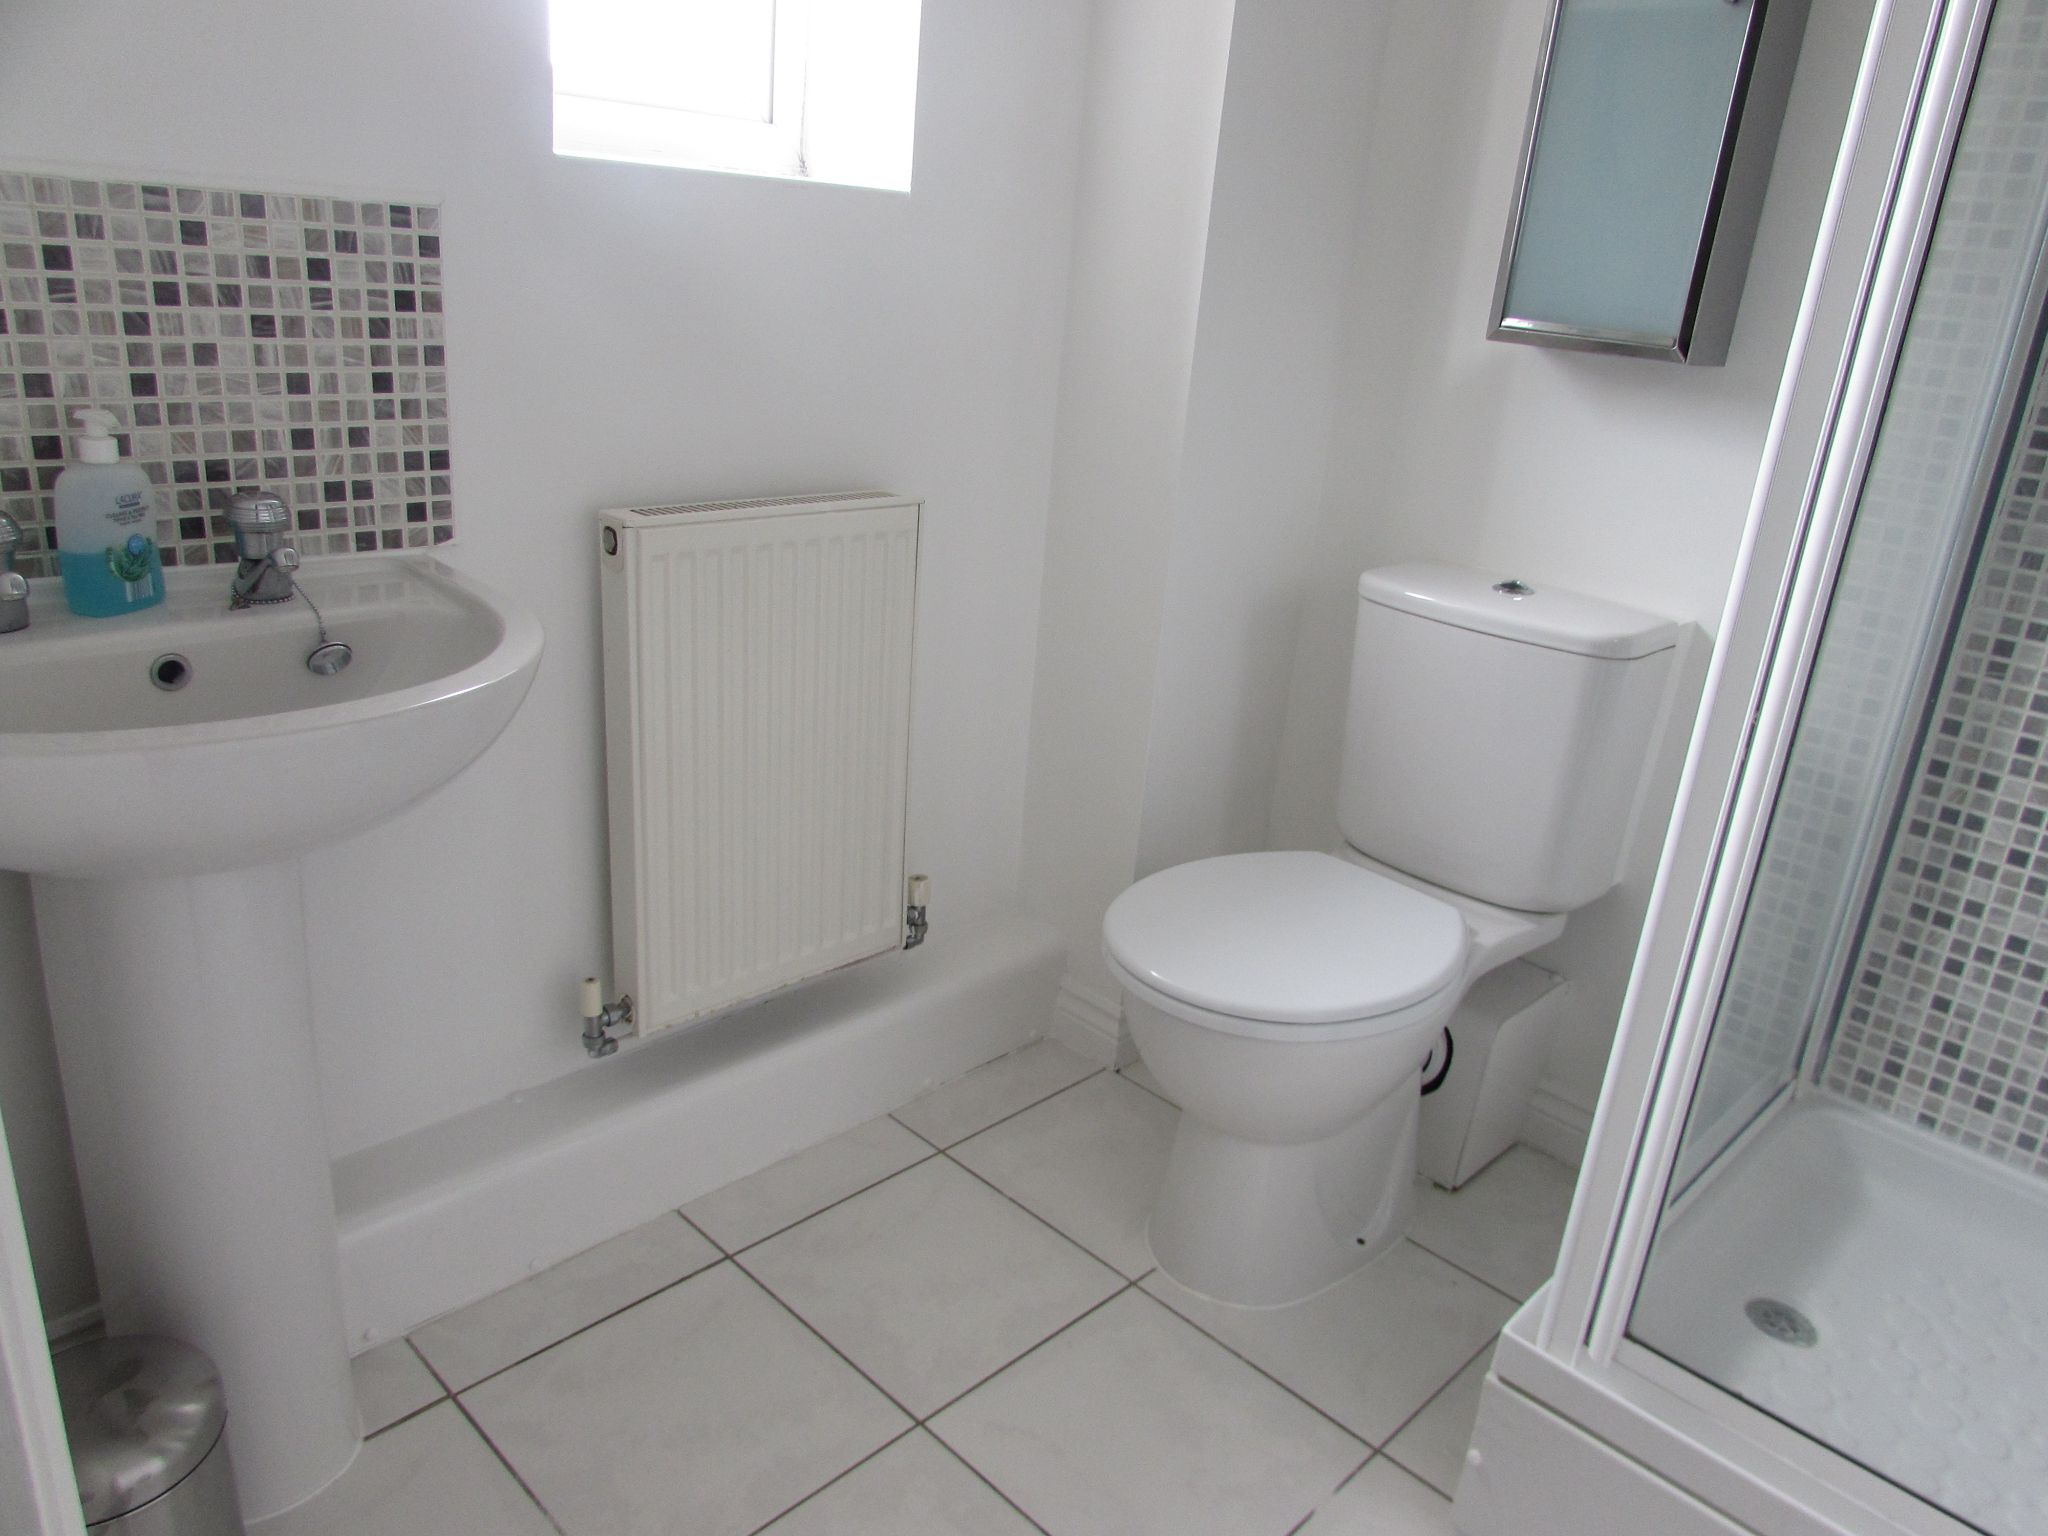 1 Bedroom Mid Terraced House To Rent - ROOM FOUR ENSUITE